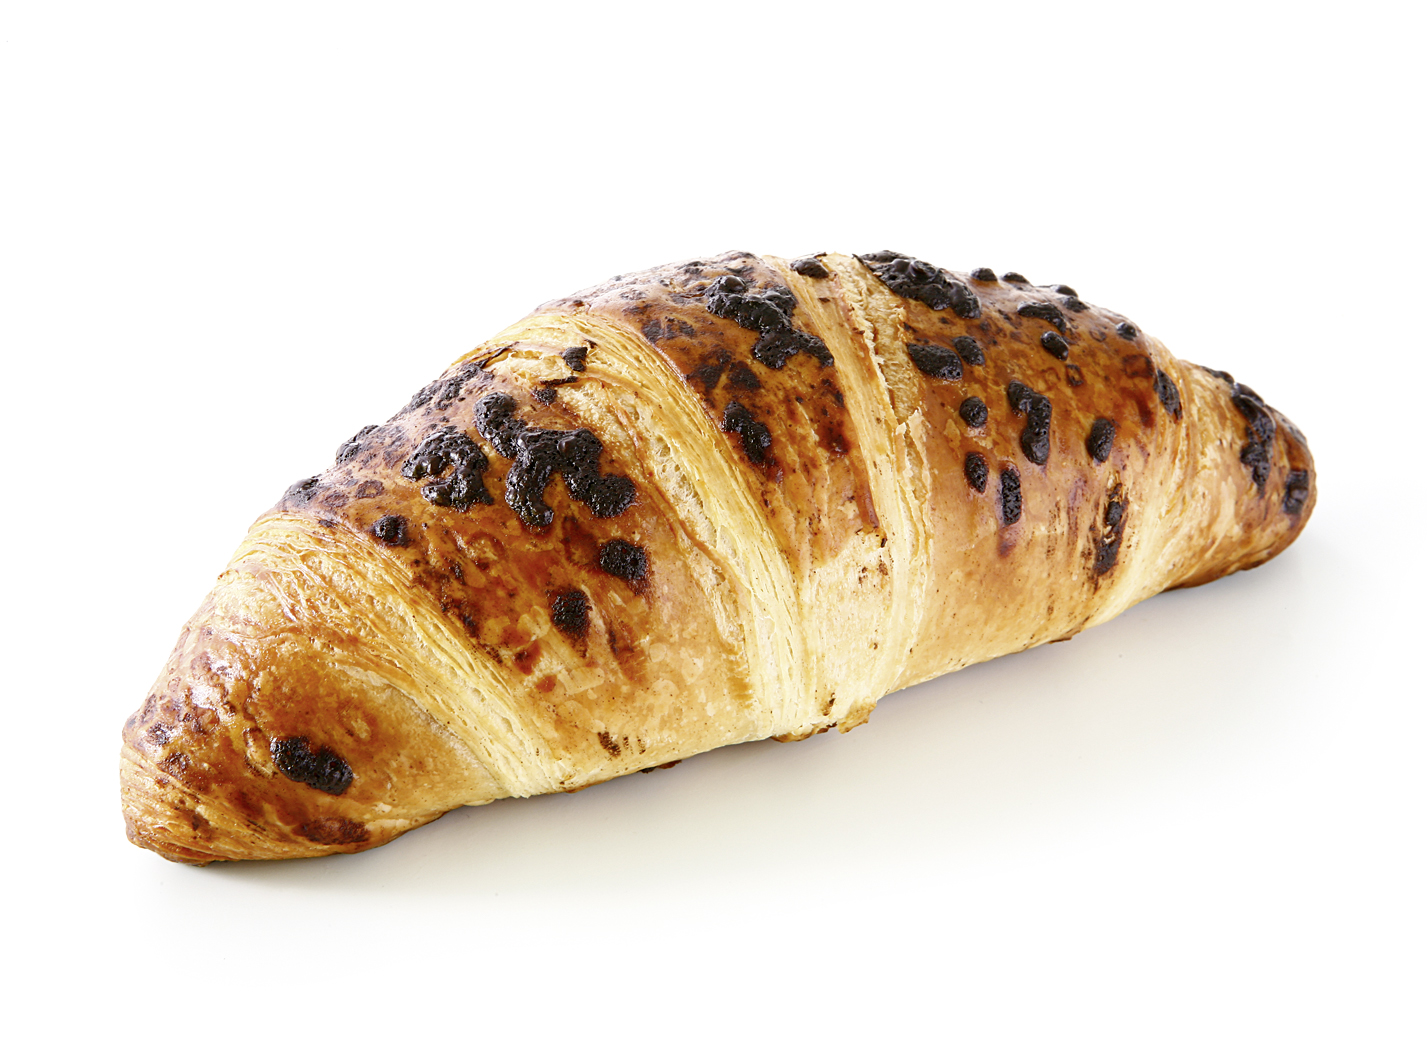 Butter Croissant with Chocolate Filling - Danish pastry with 20% butter/ filled with 17% original Belgian chocolate and decorated with chocolate chips